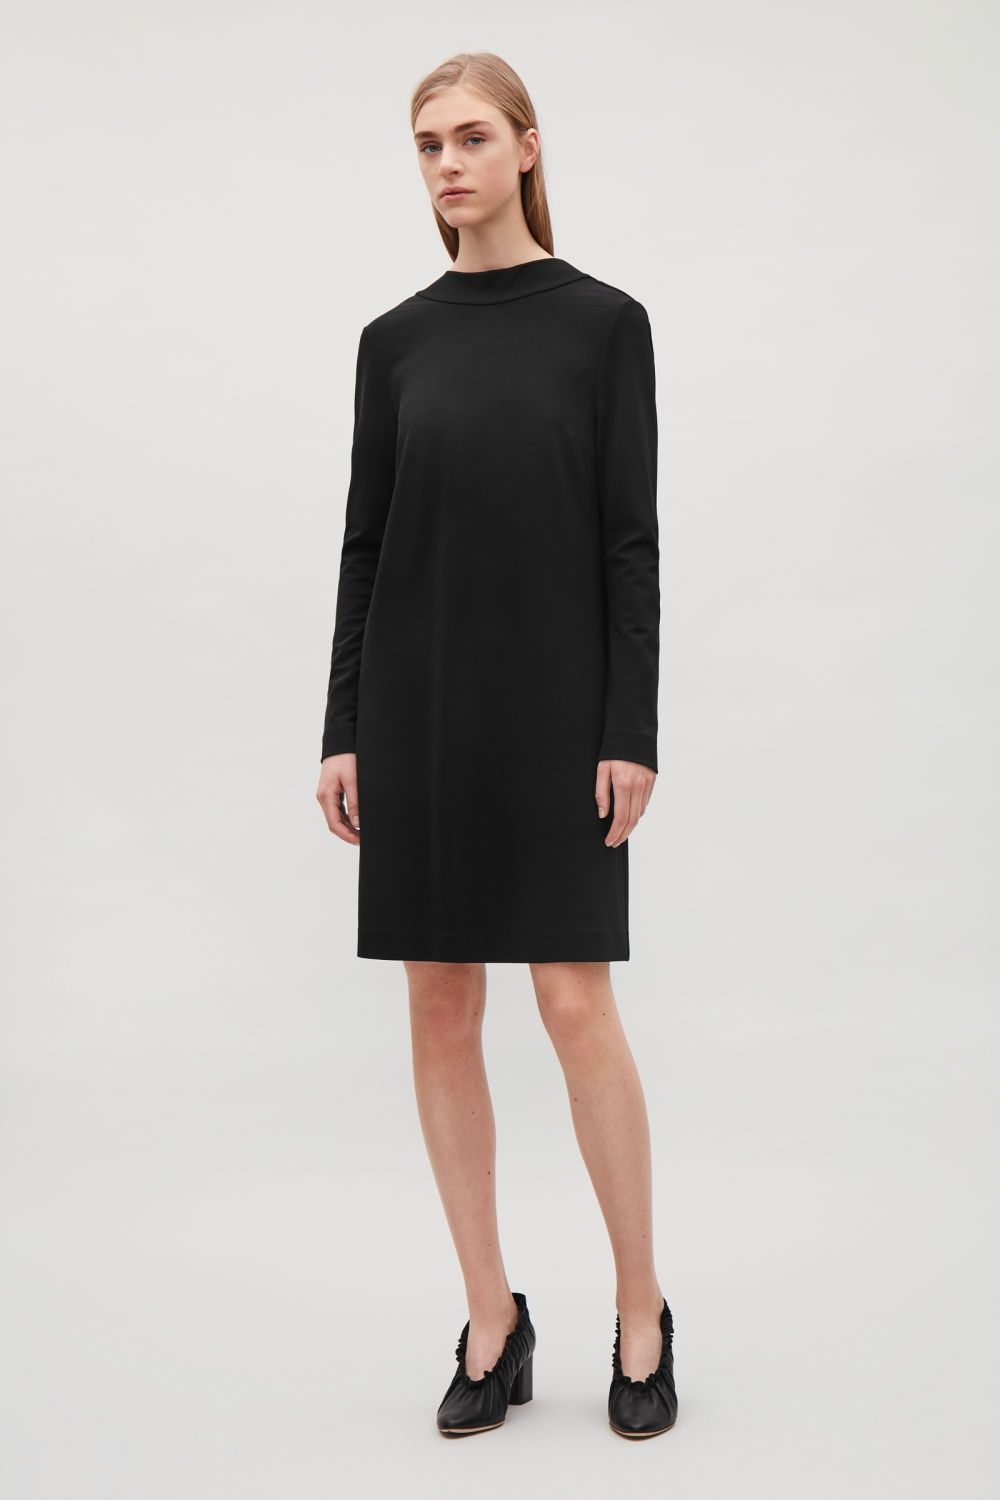 COS DRESS WITH DRAPED BACK,Black